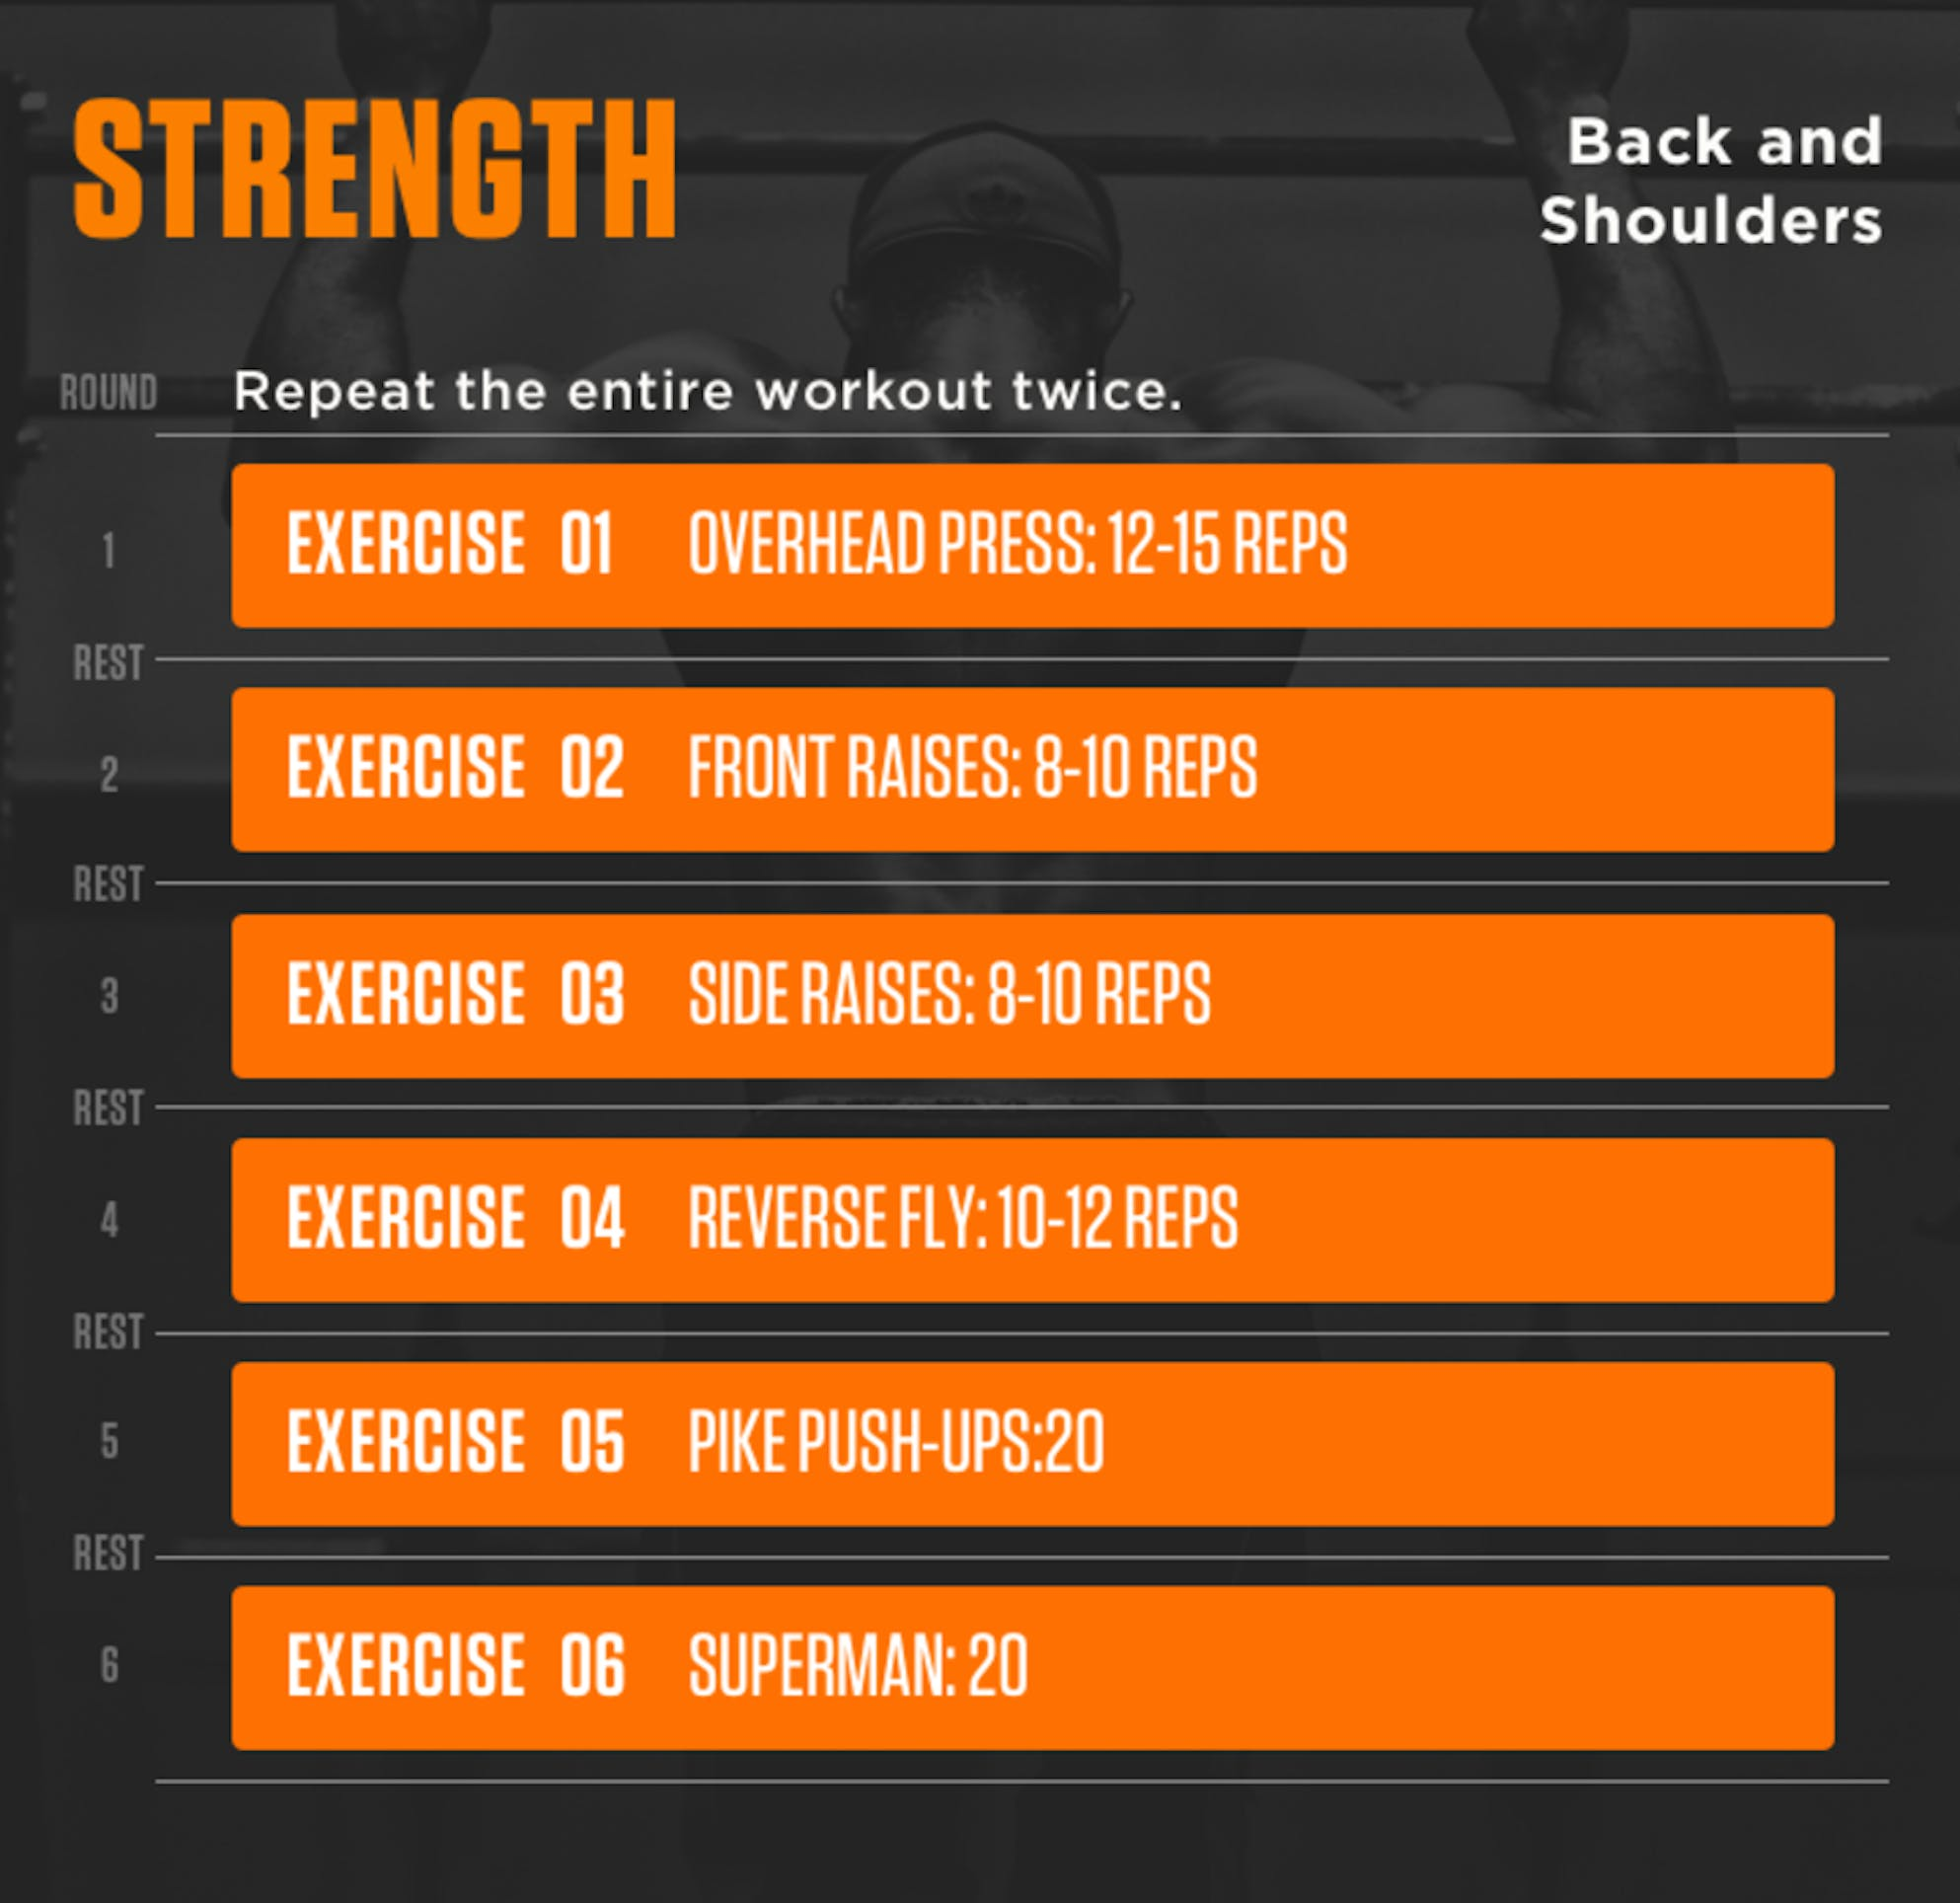 How to create your own workout plan and save money: strength training back and shoulders